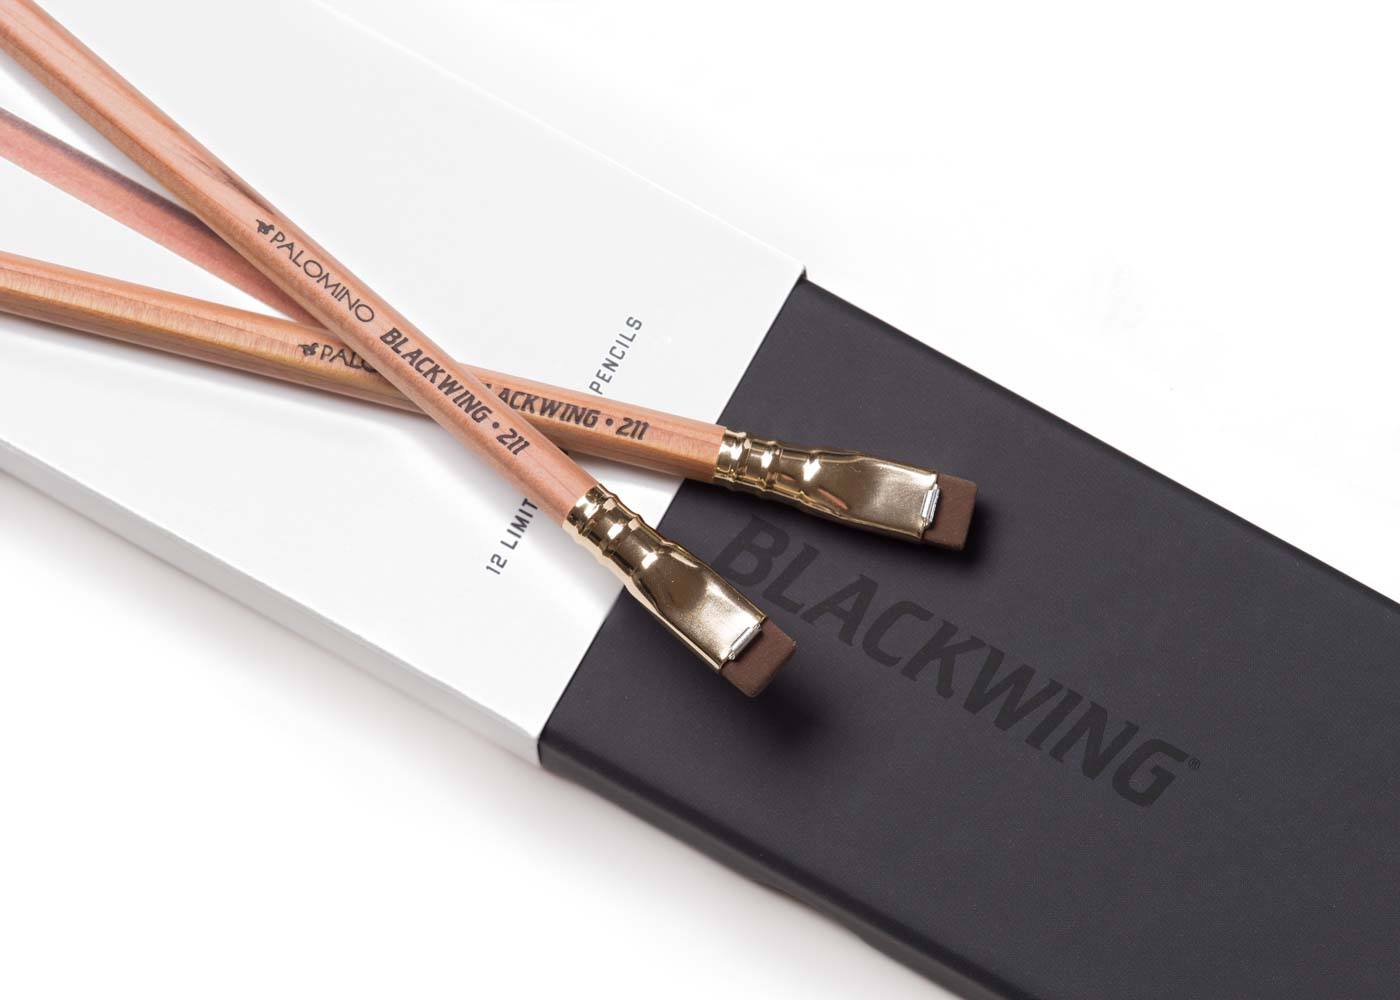 Blackwing pencils are mighty fine writing instruments (and those erasers are pretty swell too!).